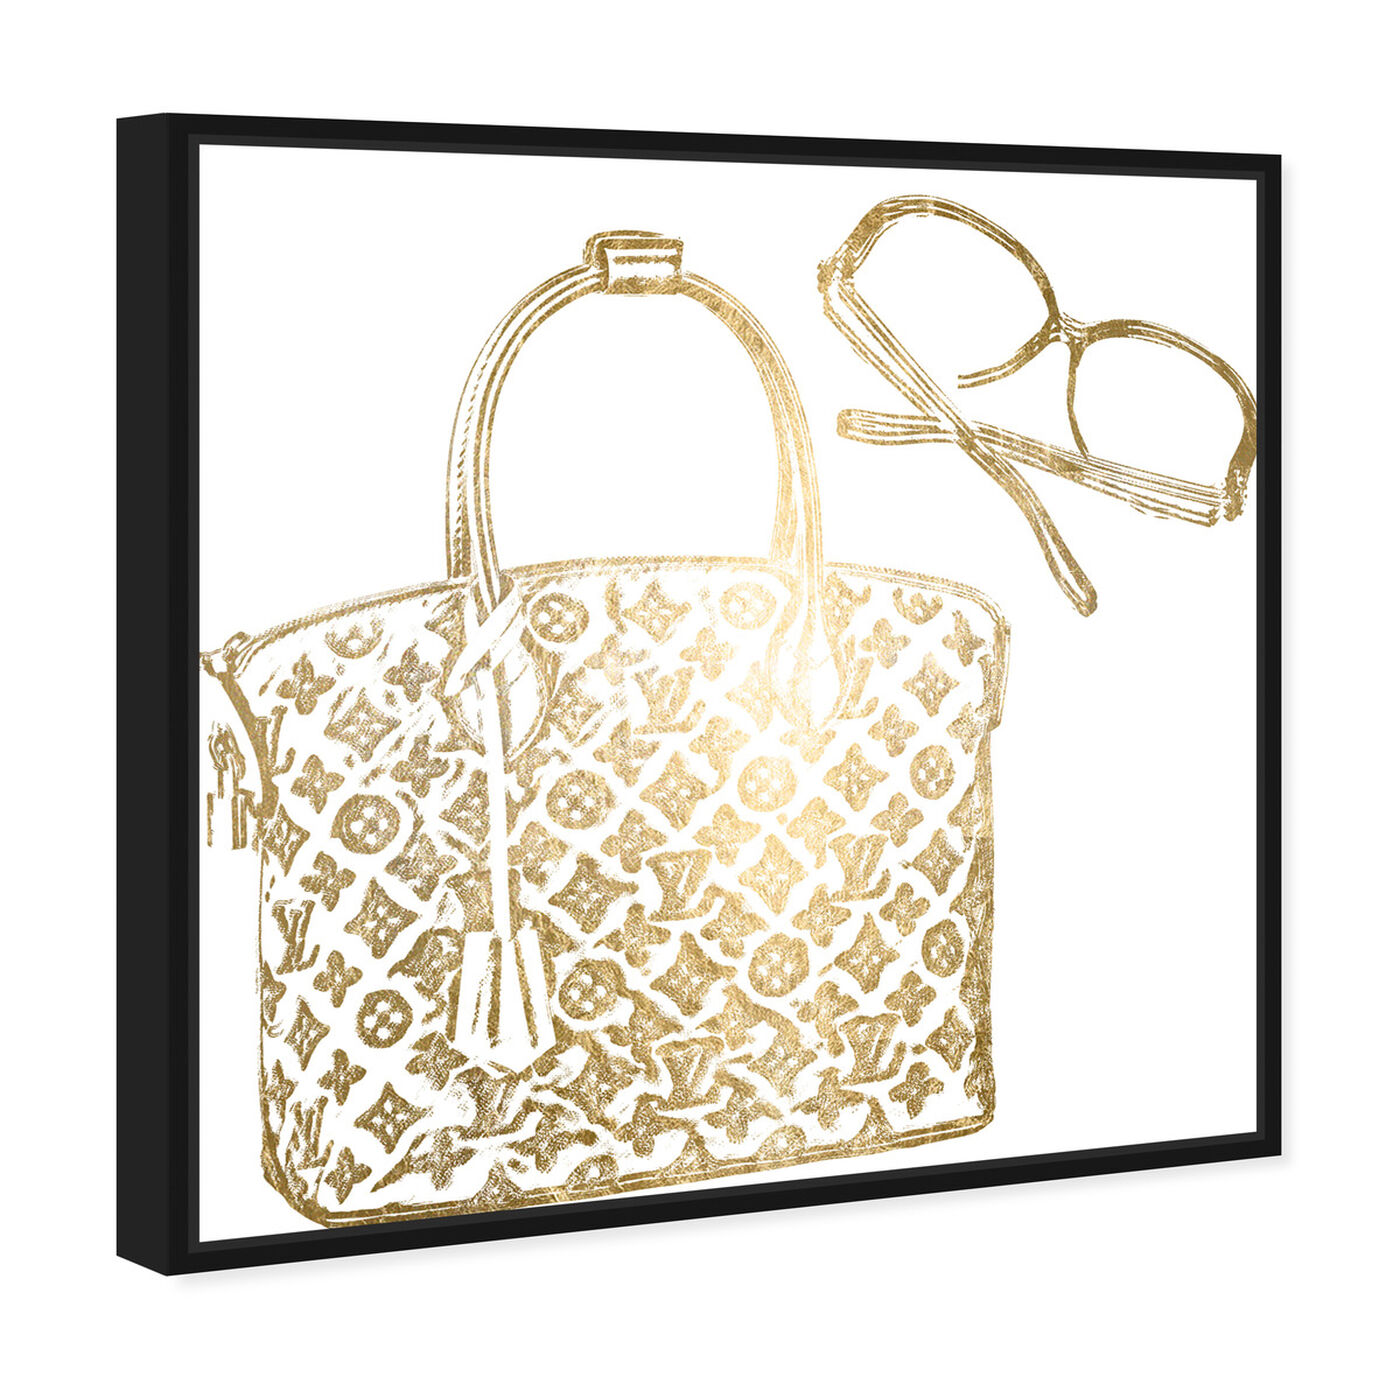 Angled view of Luxe Musts Gold Foil featuring fashion and glam and handbags art.